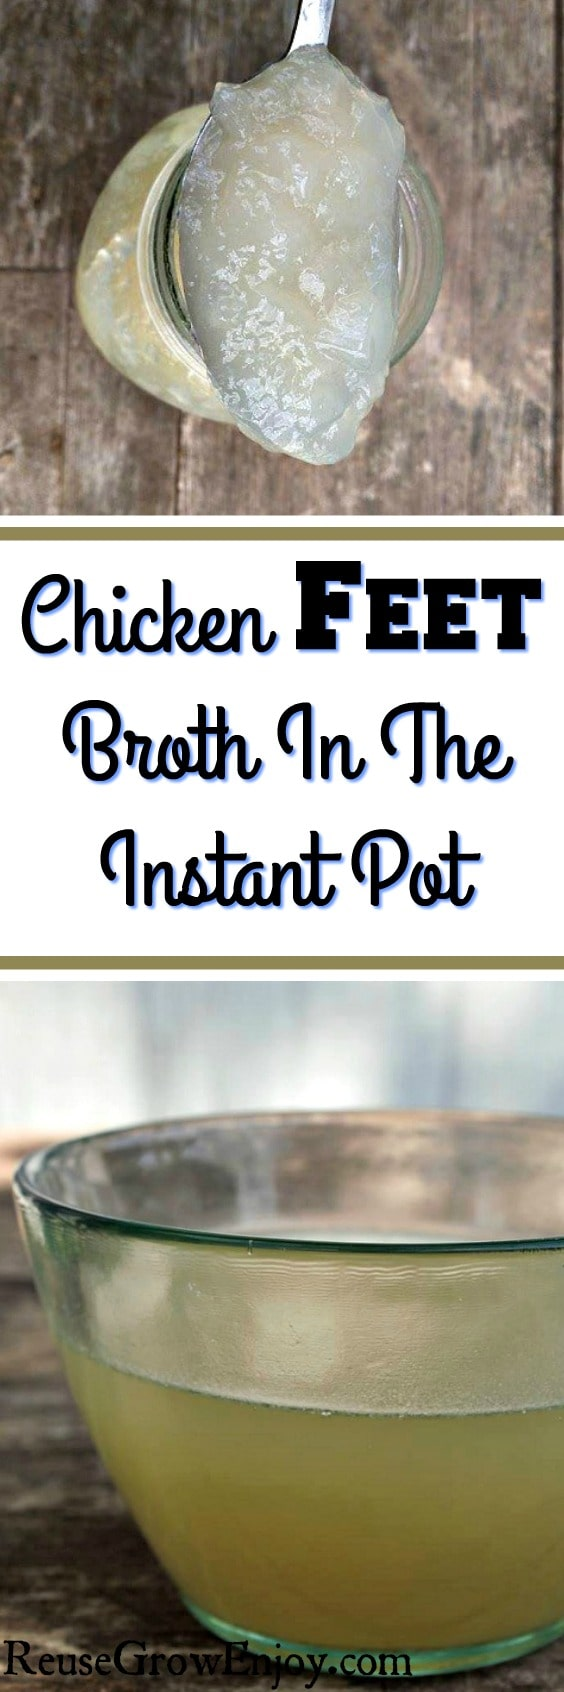 Have you ever had chicken feet broth? It is also known as liquid gold. Check out this recipe for chicken feet broth made in the Instant Pot!